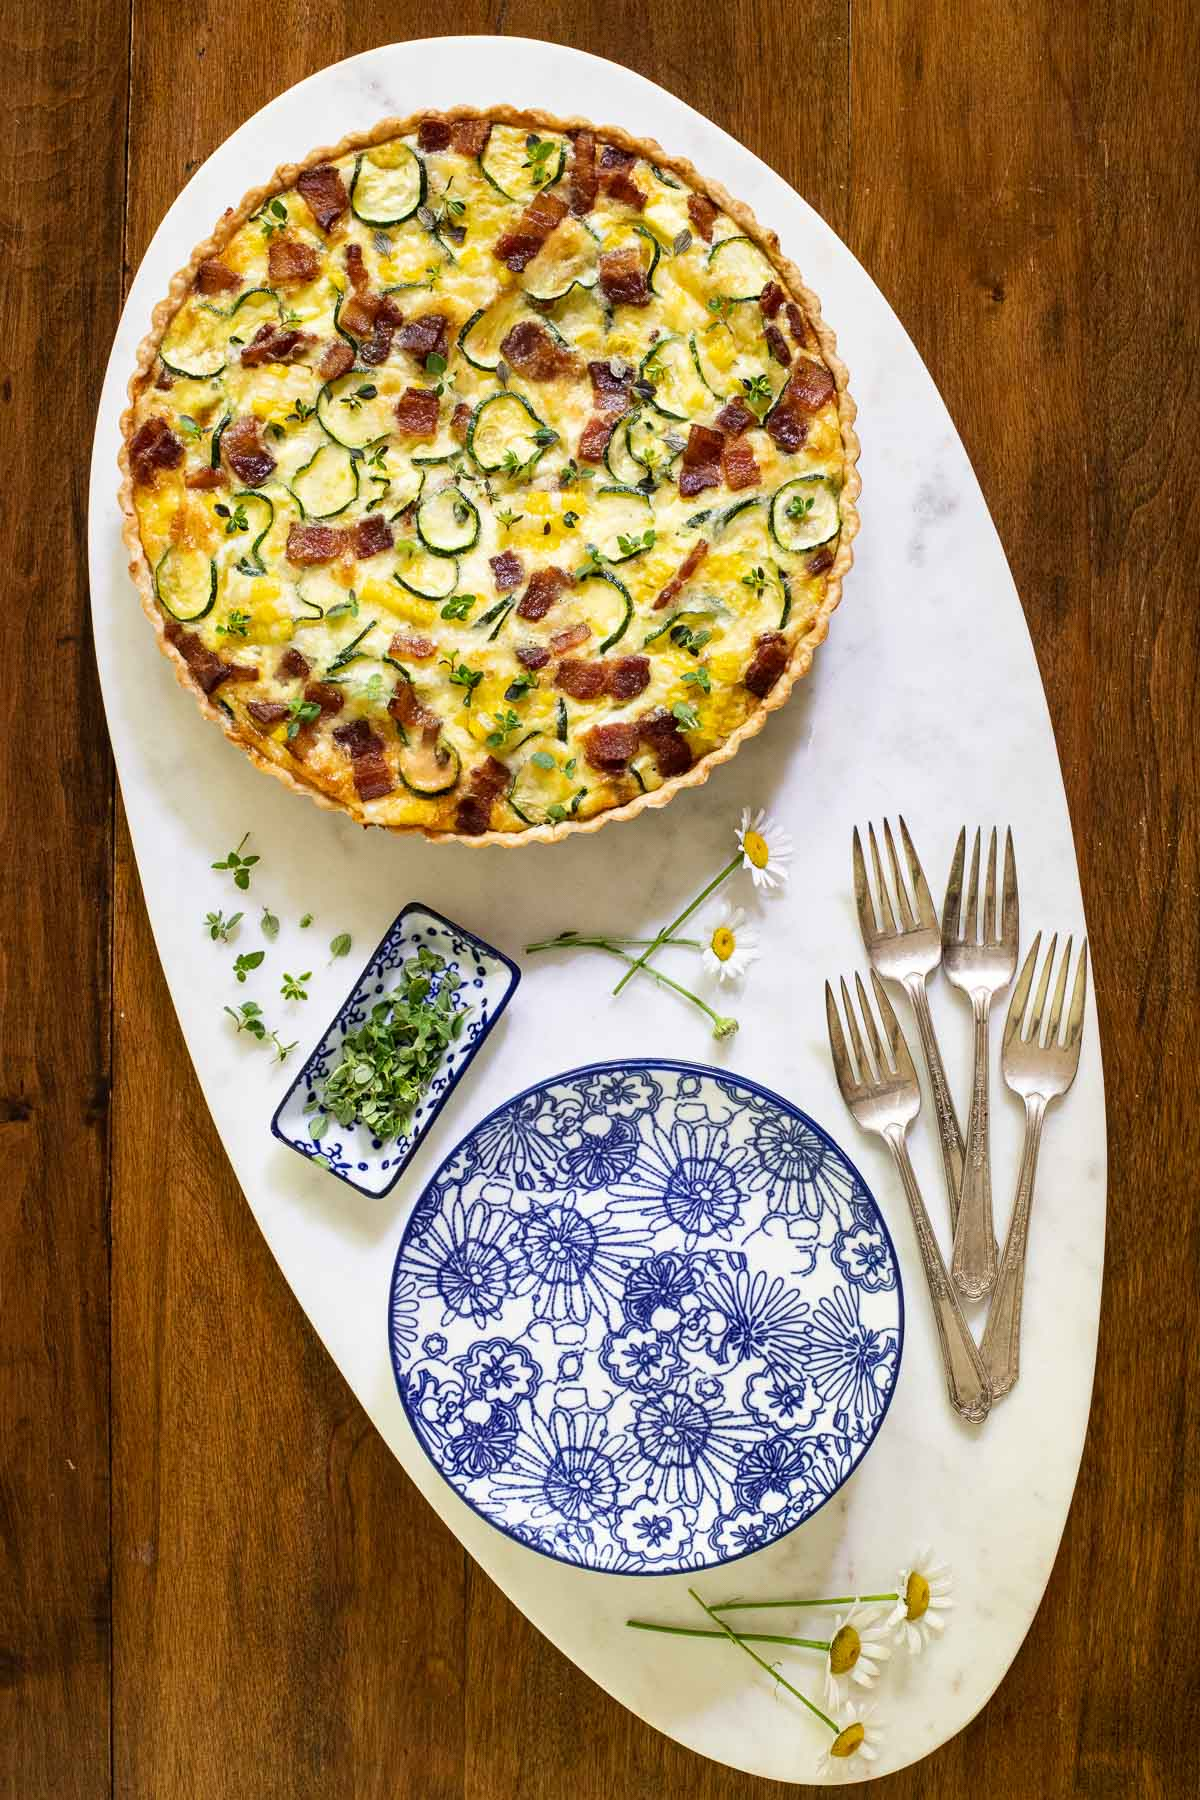 Overhead photo of a marble oval platter with an Easy Zucchini Summer Quiche and serving items.